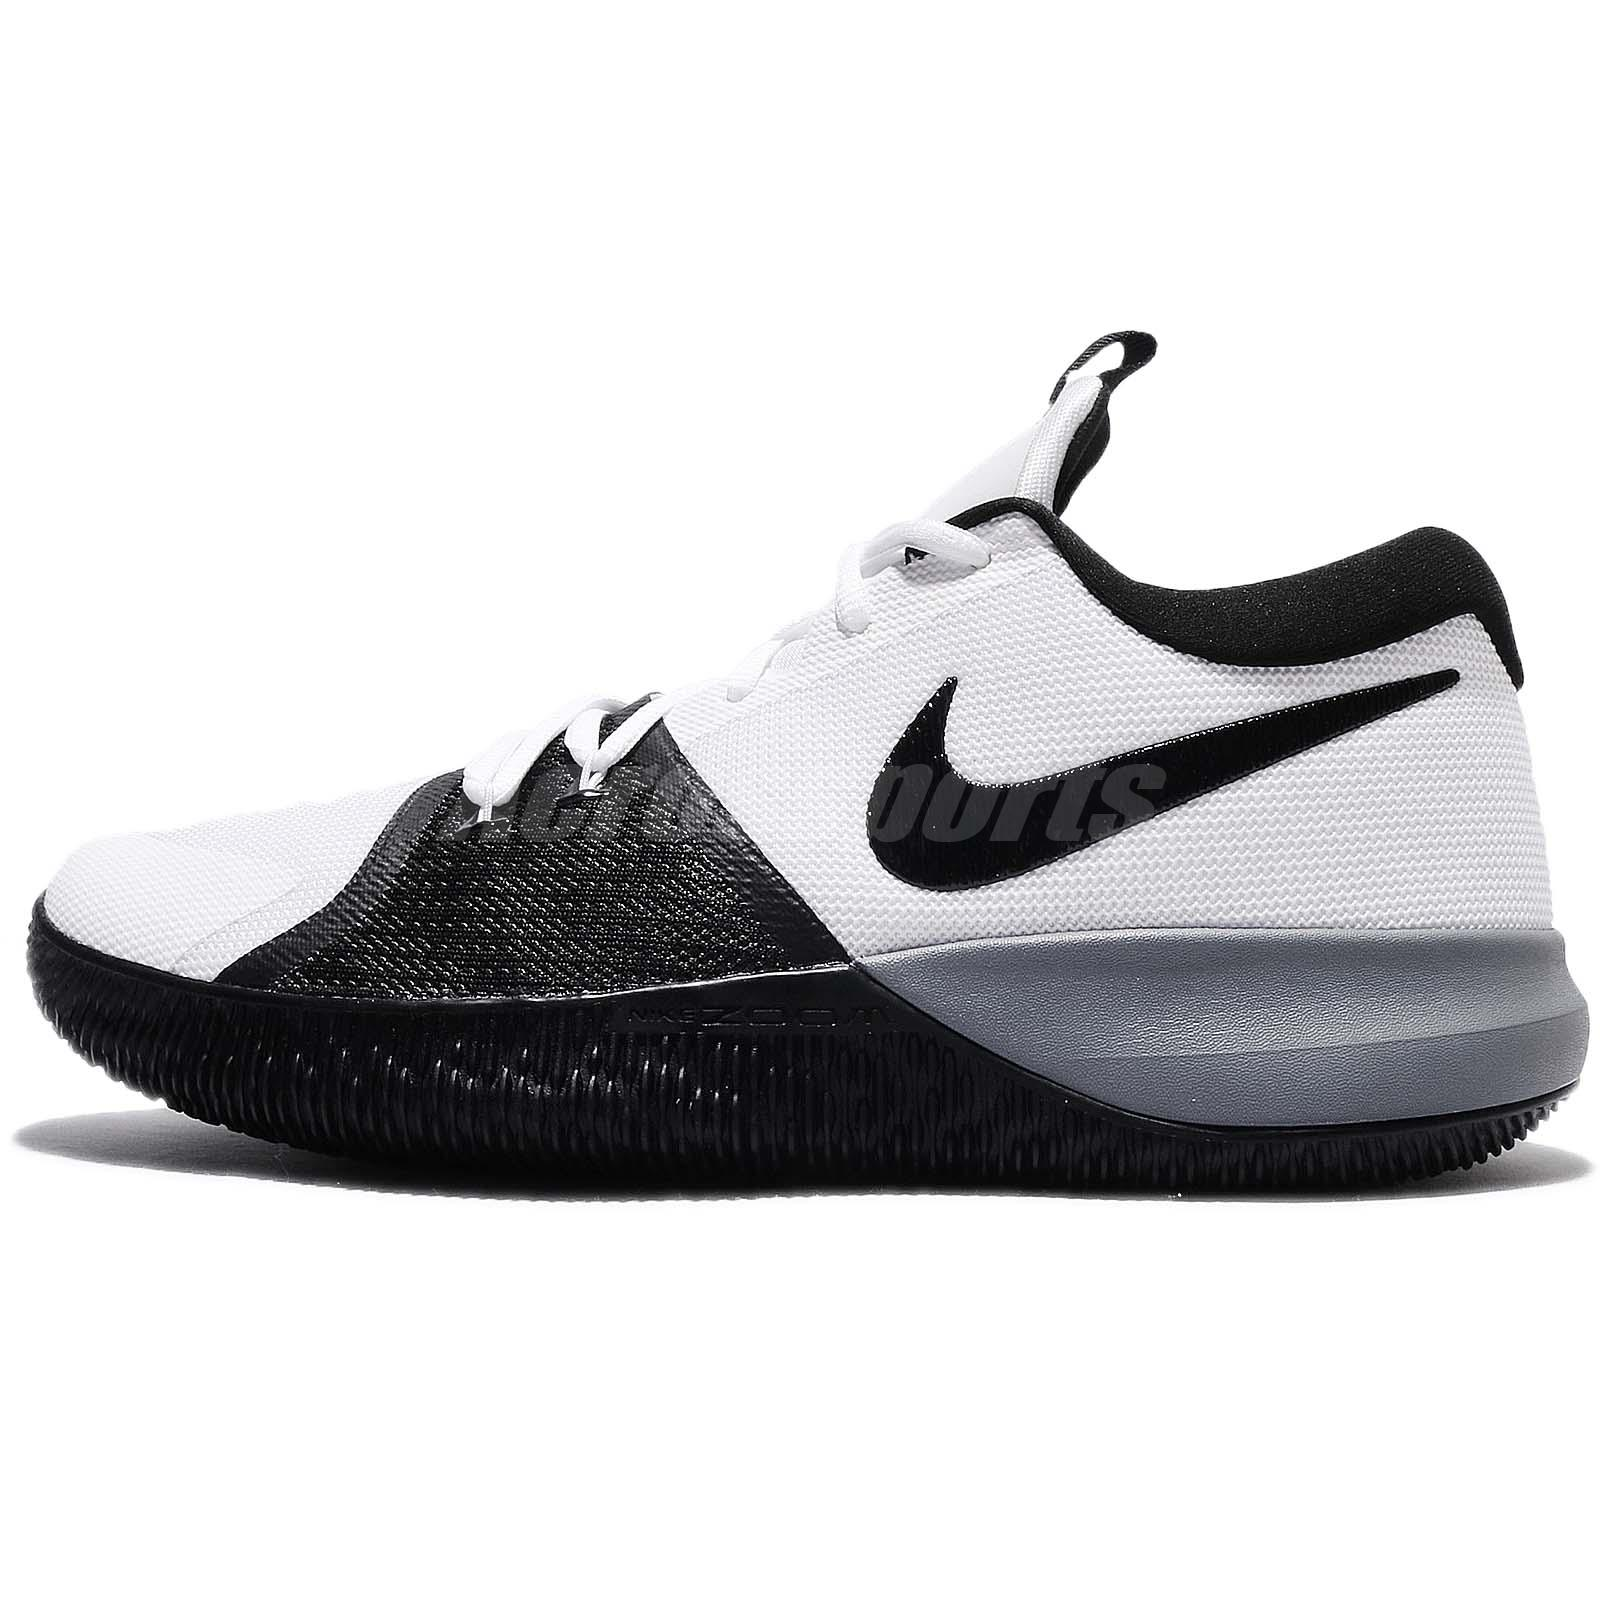 quality design c510f 9f79b Nike Zoom Assersion EP White Black Grey Men Basketball Shoes Sneakers  917506-100